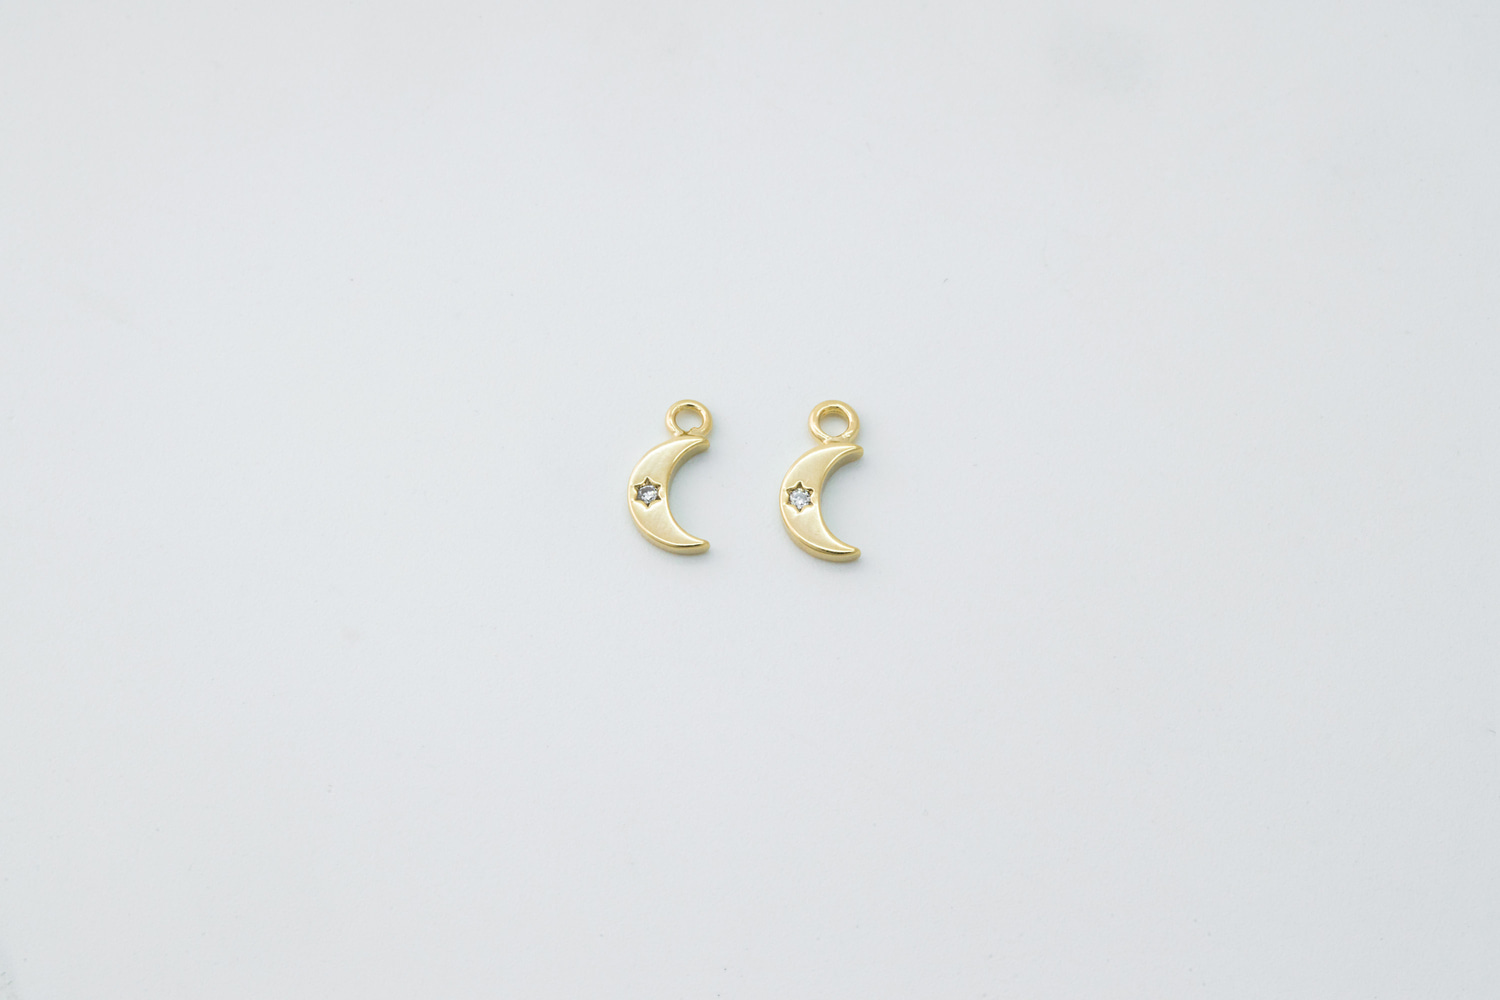 [N2-R7] Tiny crescent moon charm, Brass, CZ, Moon charm Necklace makings, Jewelry supplies, 2 pcs